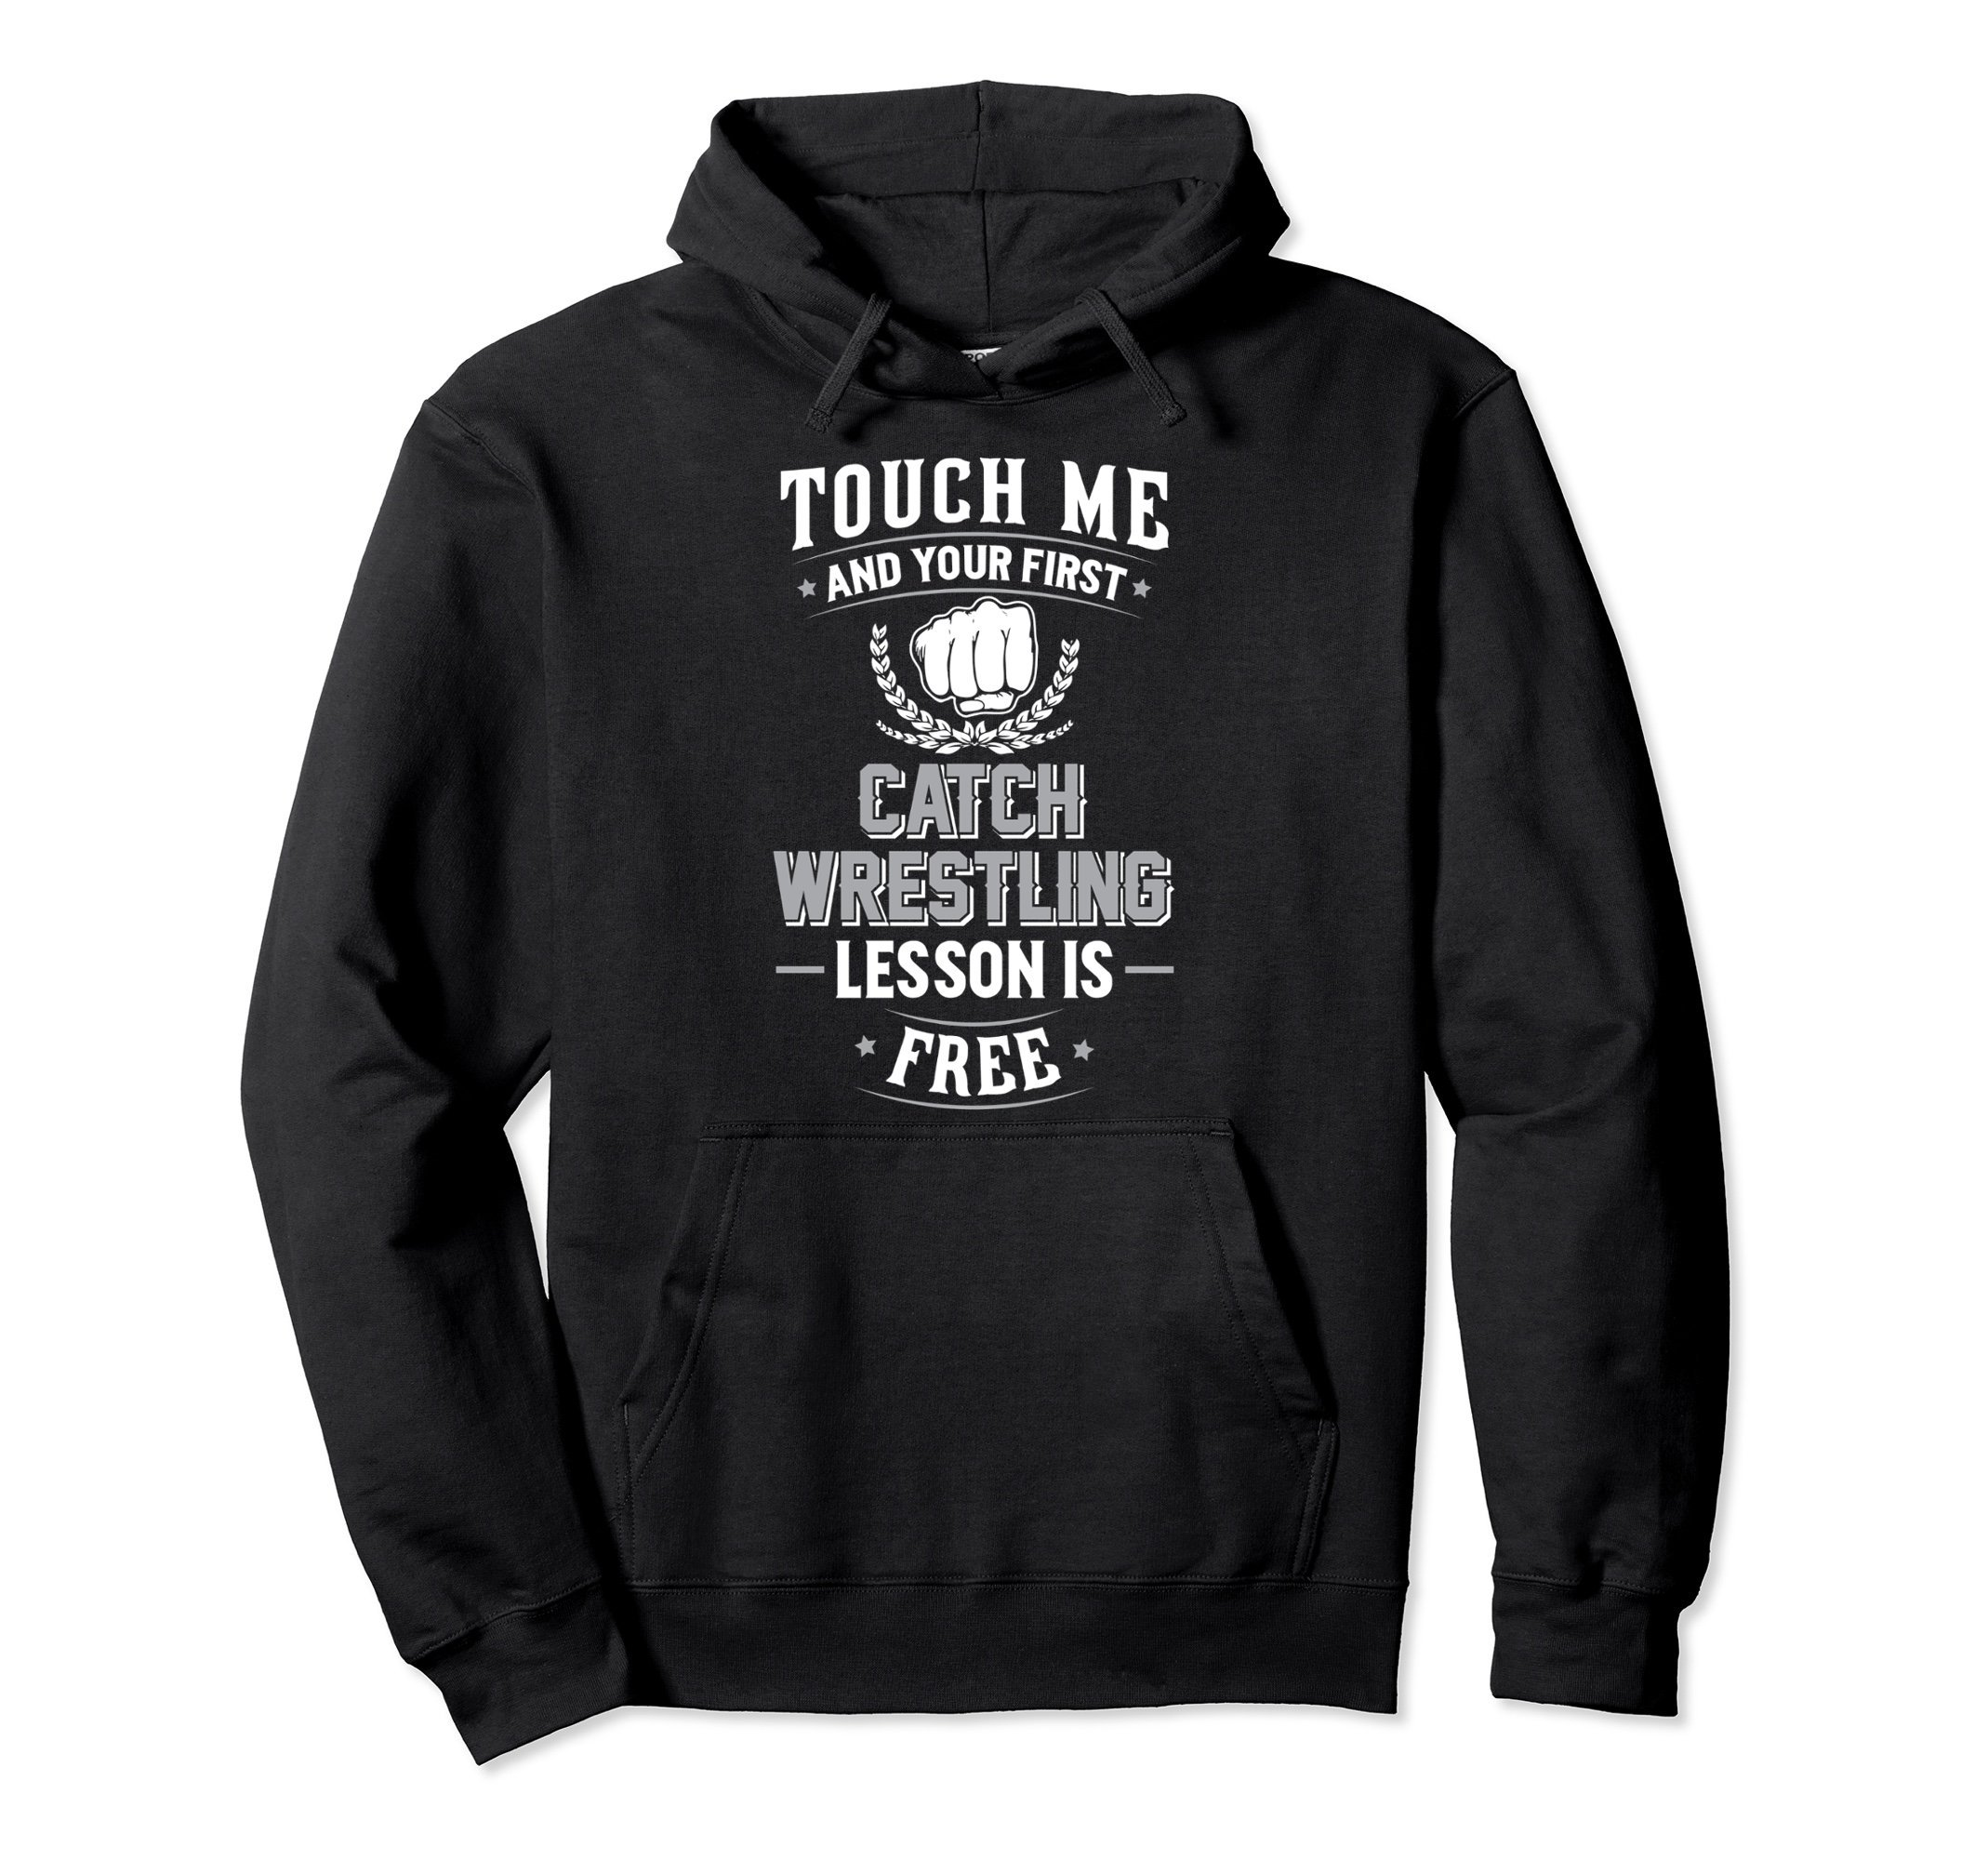 Unisex Catch Wrestling Pullover Hoodie - Your First Lesson Free! XL: Black